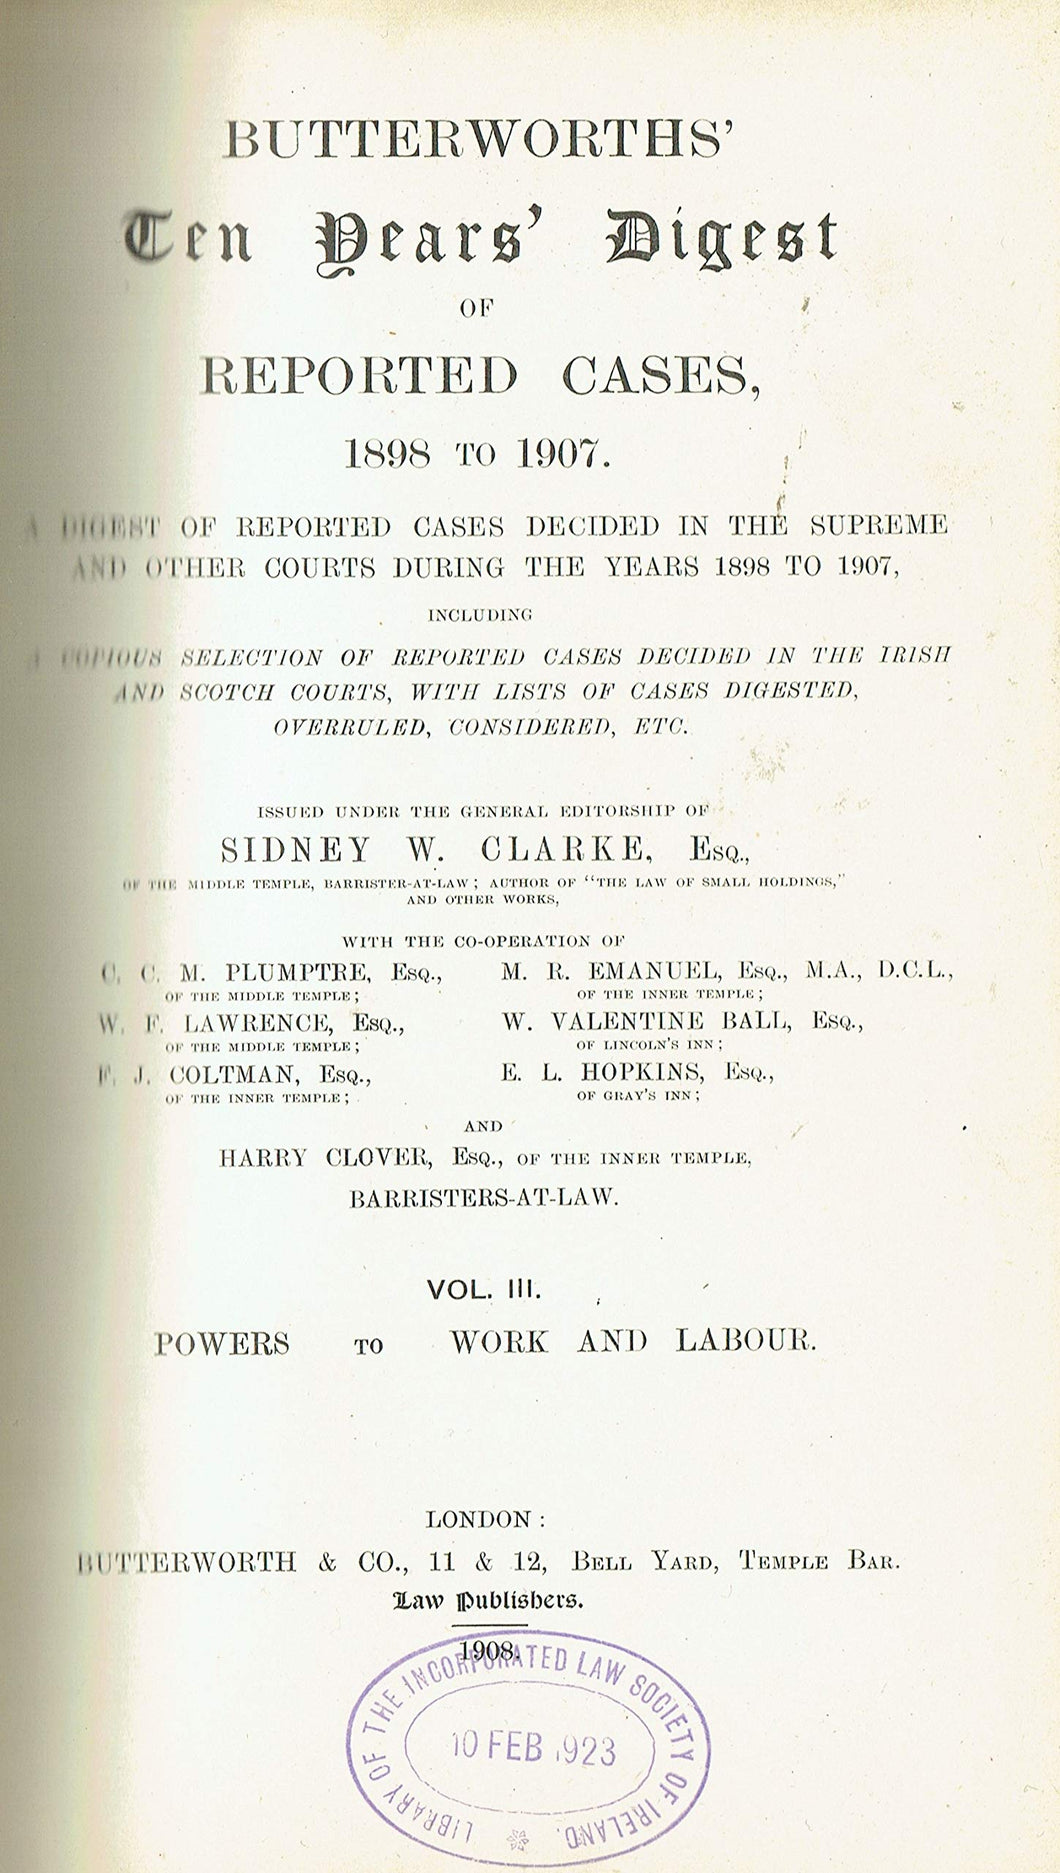 Butterworths' Ten Years' Digest of Reported Cases, 1898 to 1907: Volume III - Volume 3 - Volume Three: Powers to Work and Labour